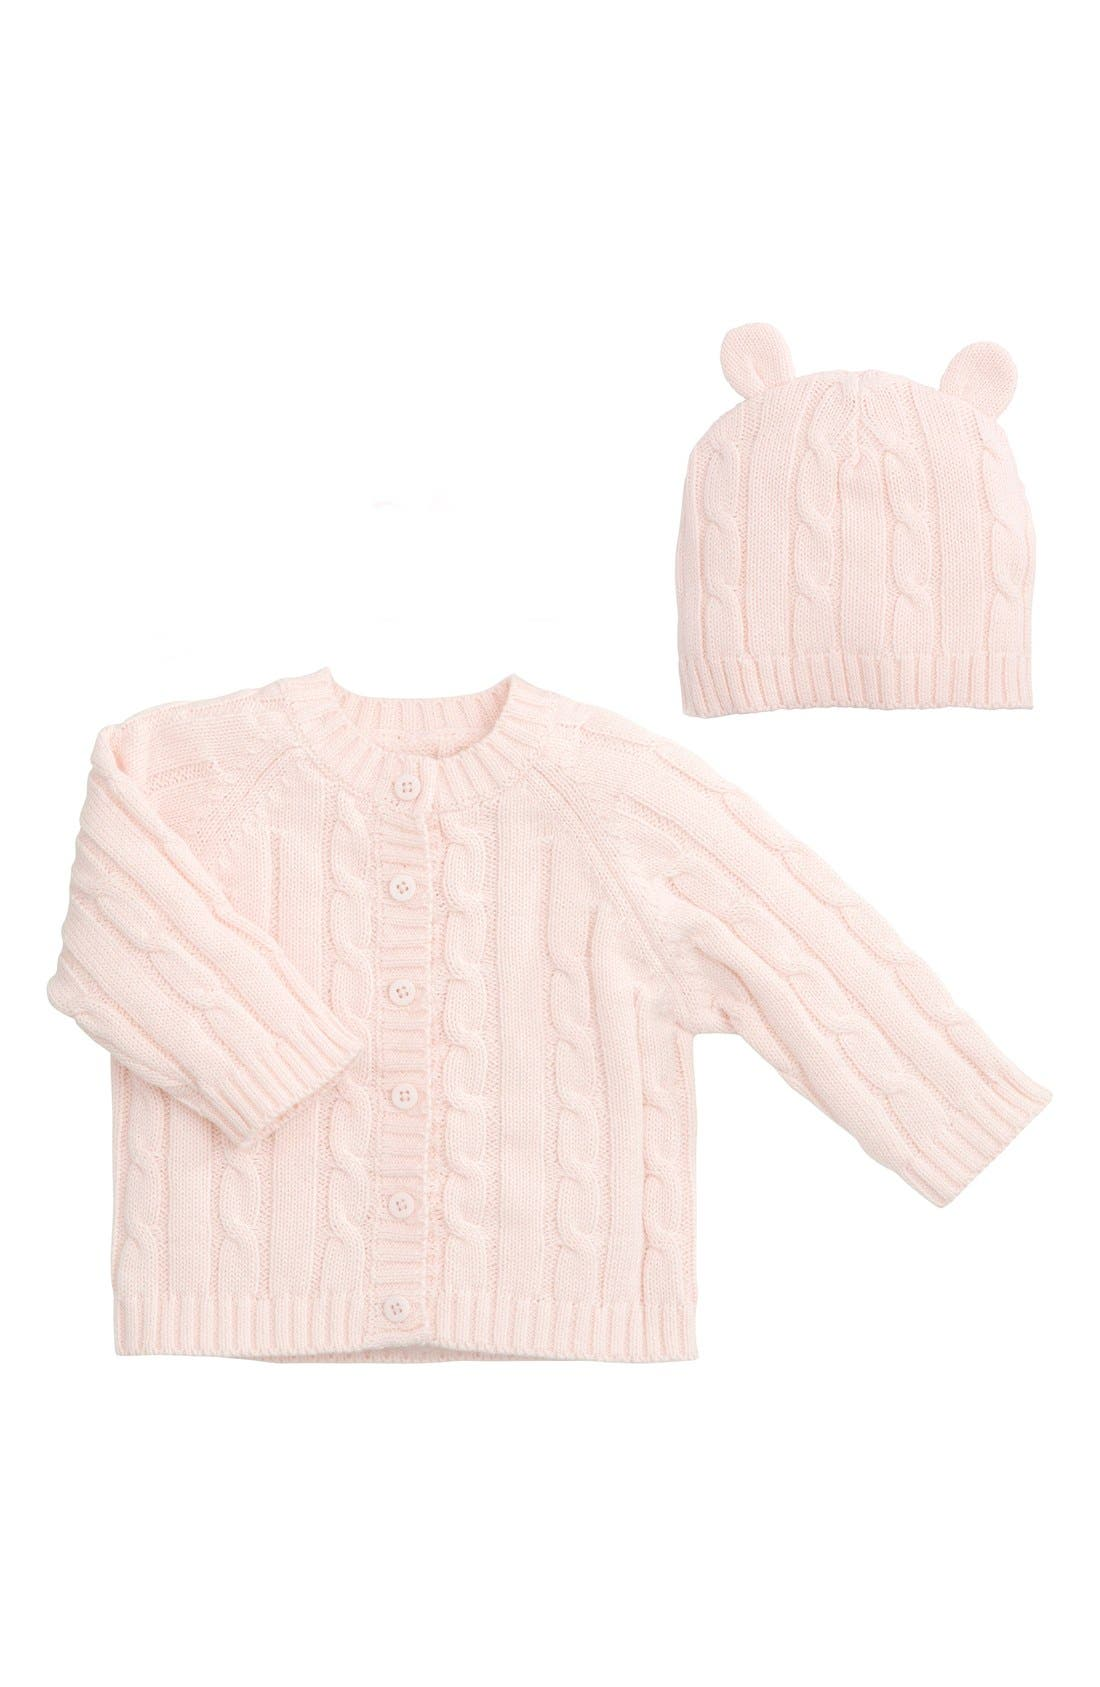 Cable Knit Sweater & Hat Set,                             Main thumbnail 1, color,                             LIGHT PINK